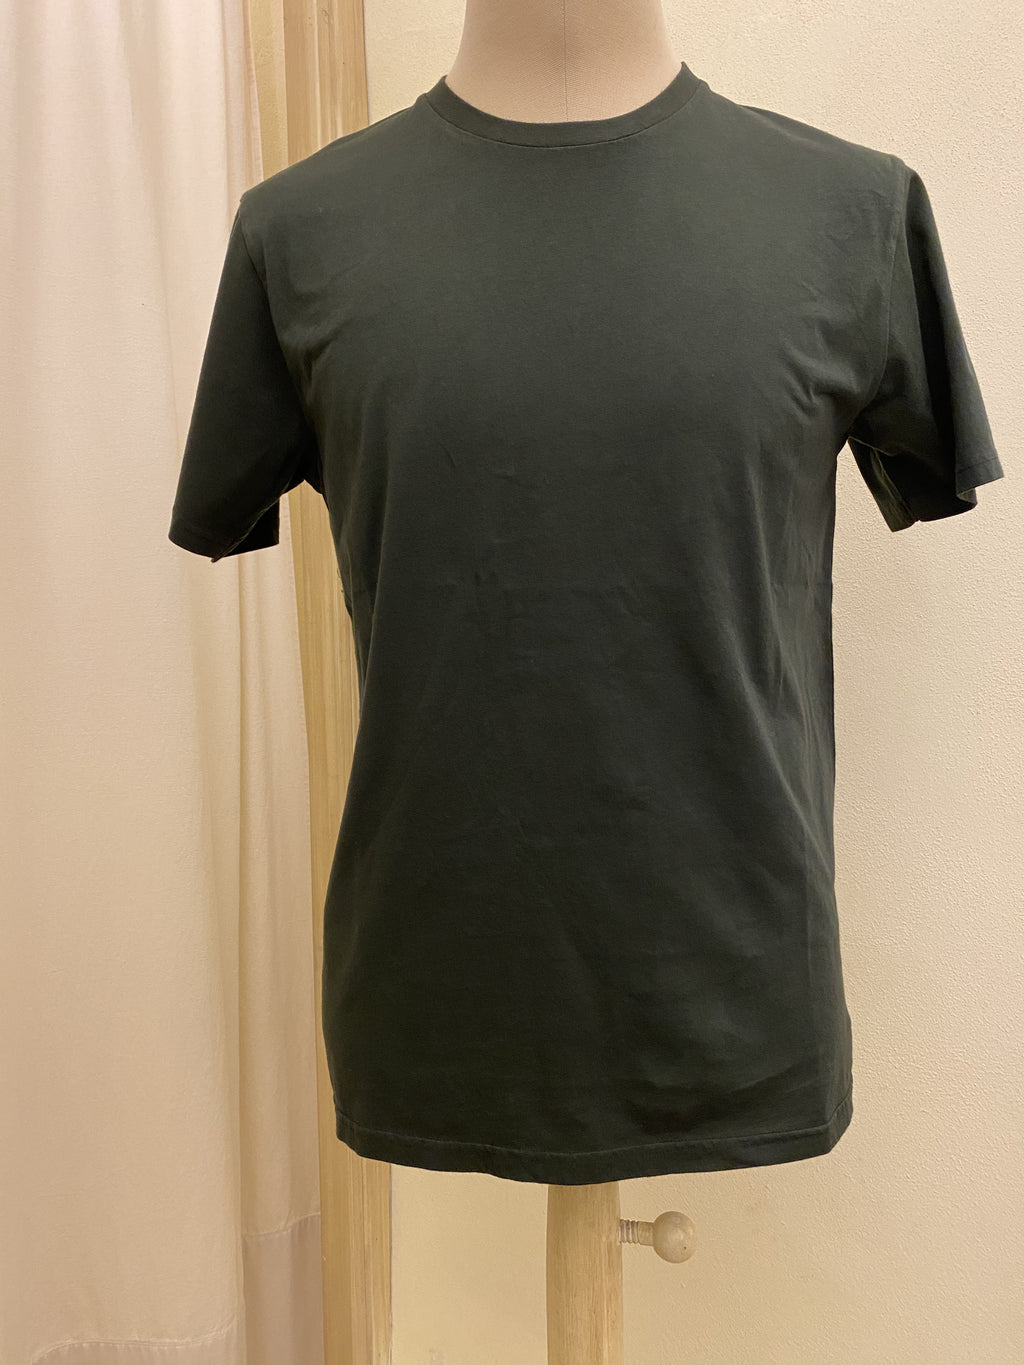 T-SHIRT COLORFUL STANDARD - DARK GREEN